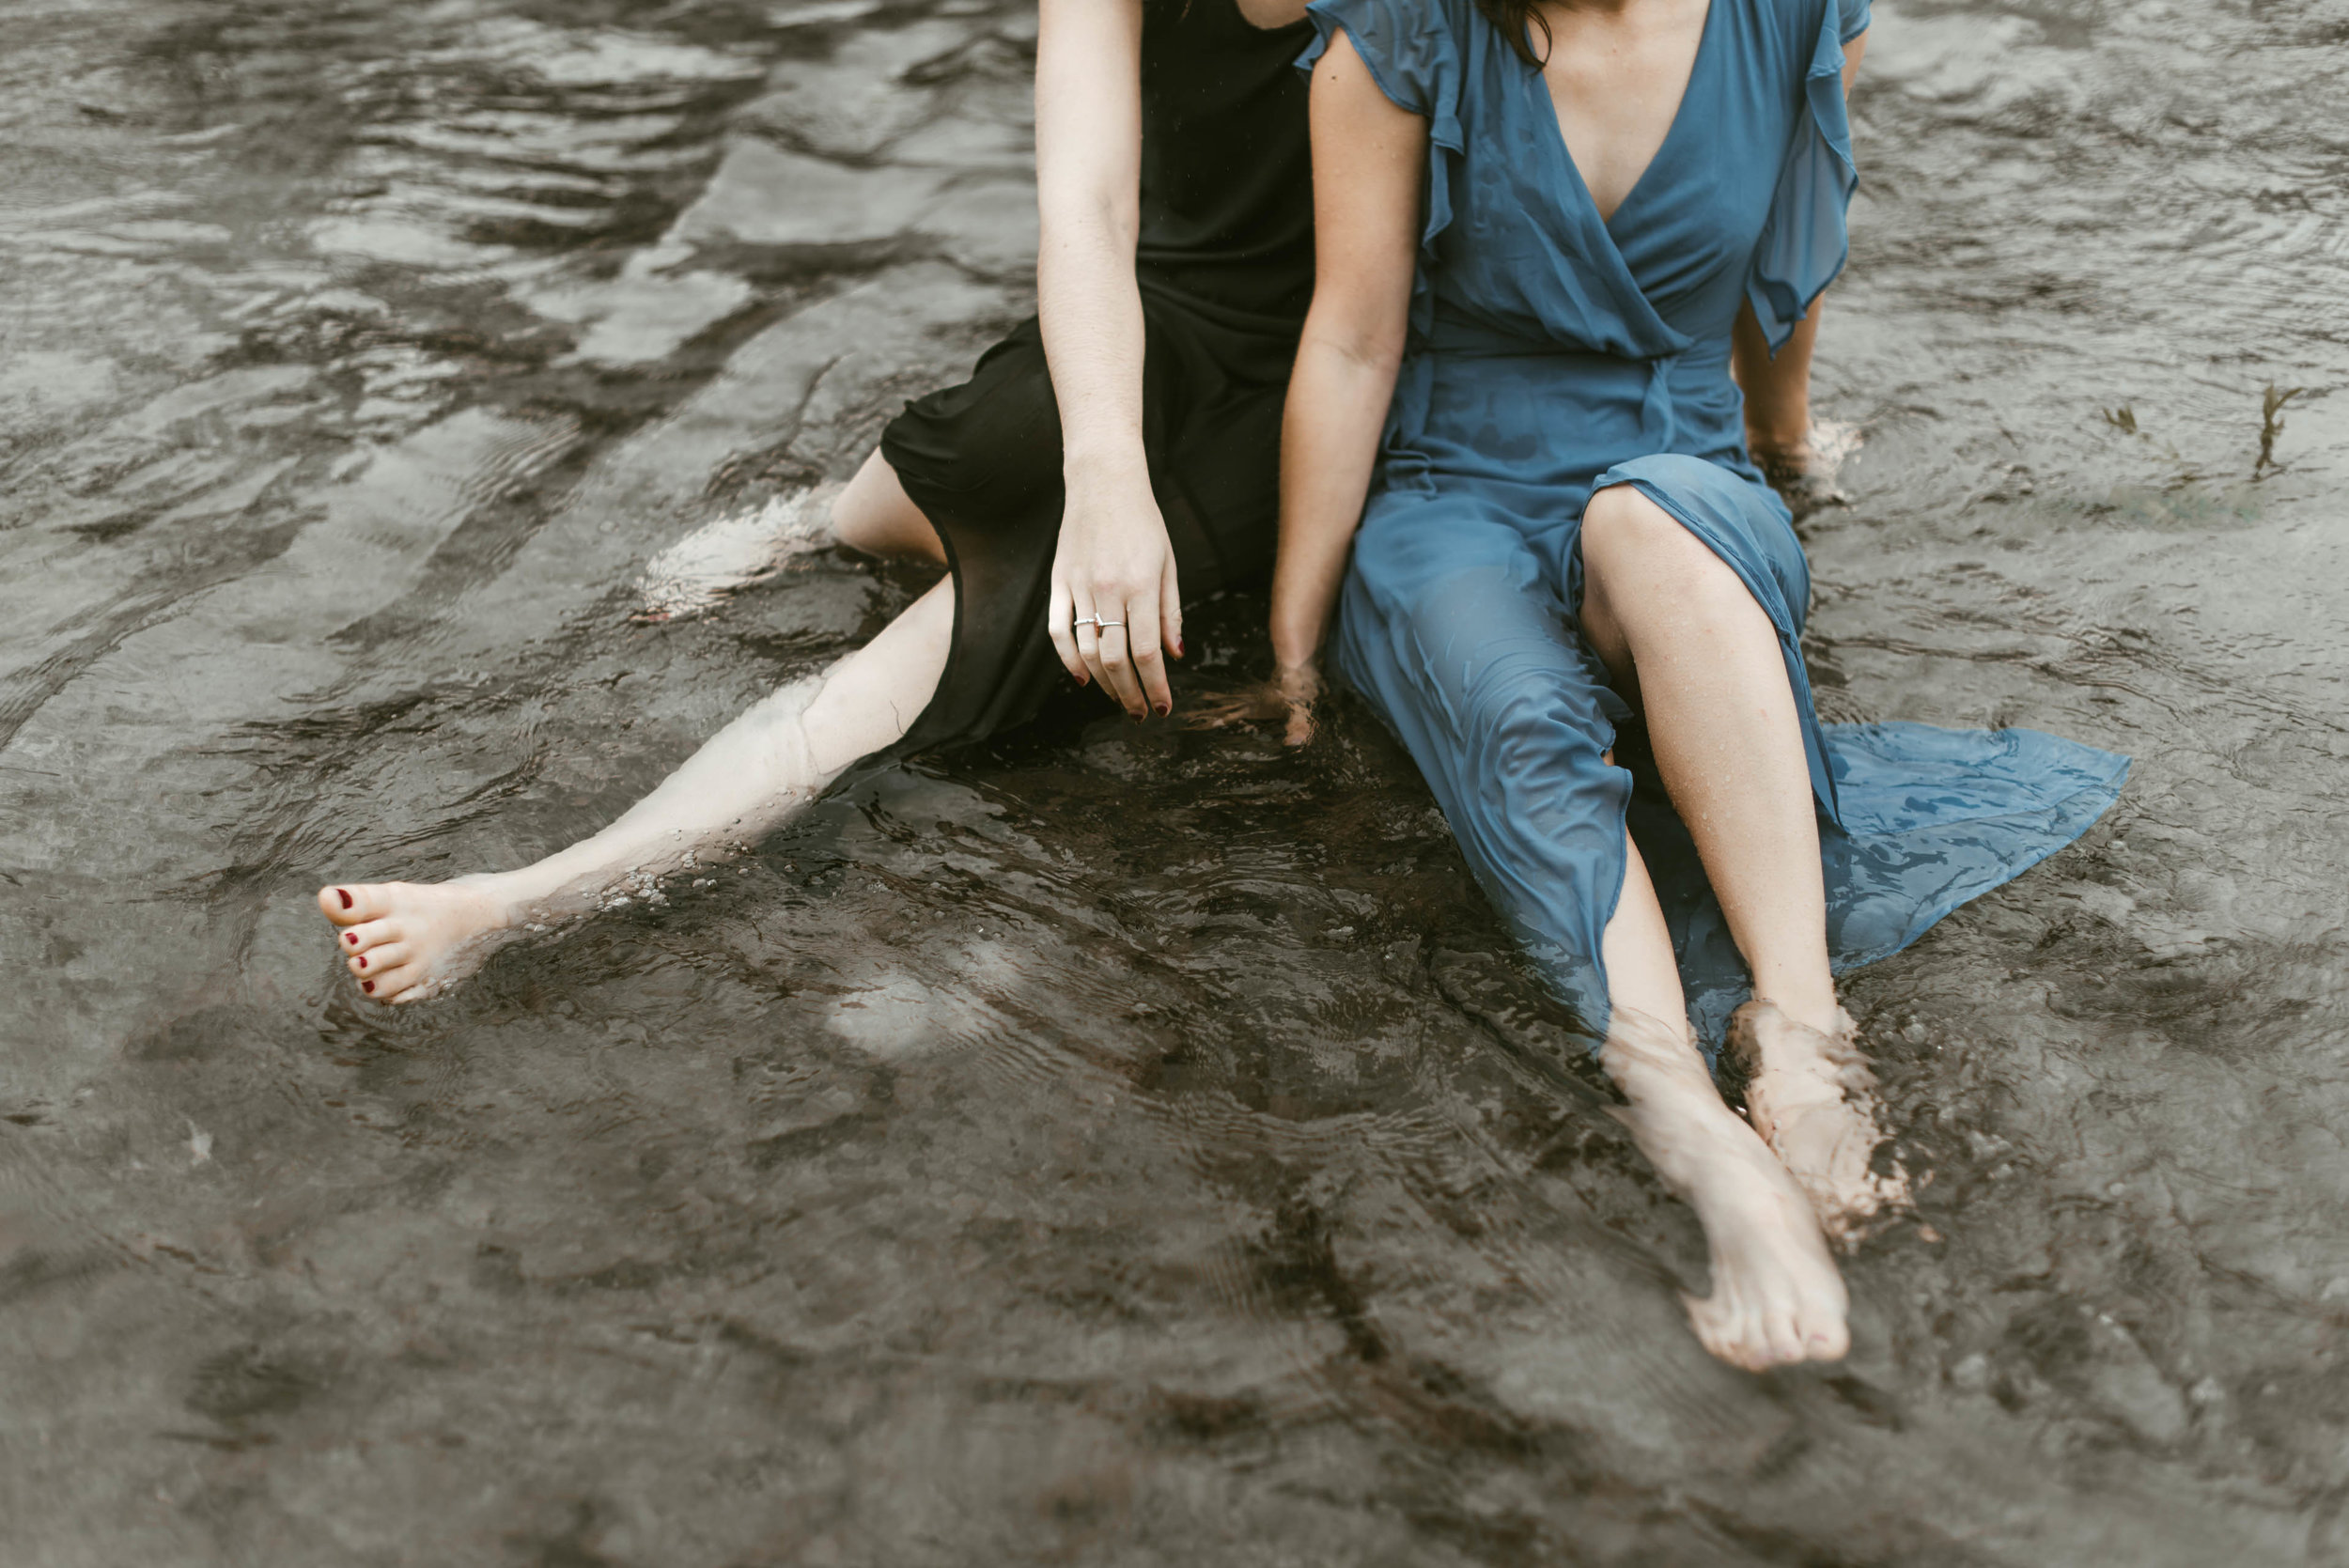 Austin Greenbelt moody blue selkie river photoshoot with Kaley Wheless and Lauren Tronick - Kendall Rock Photography